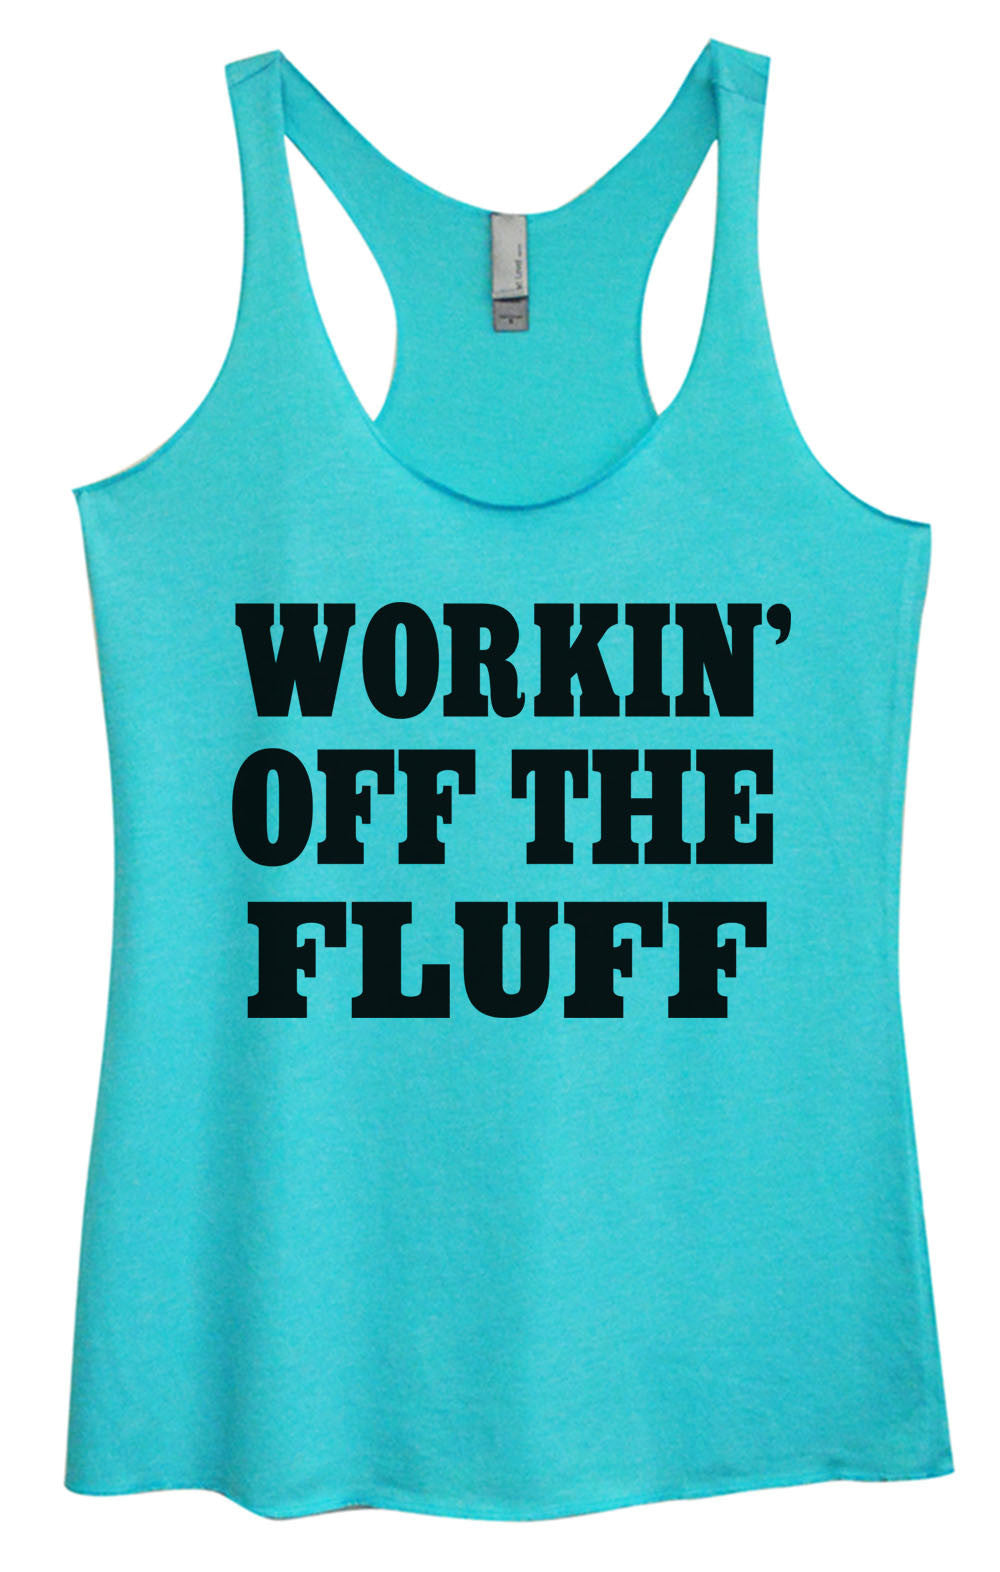 Womens Fashion Triblend Tank Top - Workin' Off The Fluff - Tri-688 - Funny Shirts Tank Tops Burnouts and Triblends  - 1